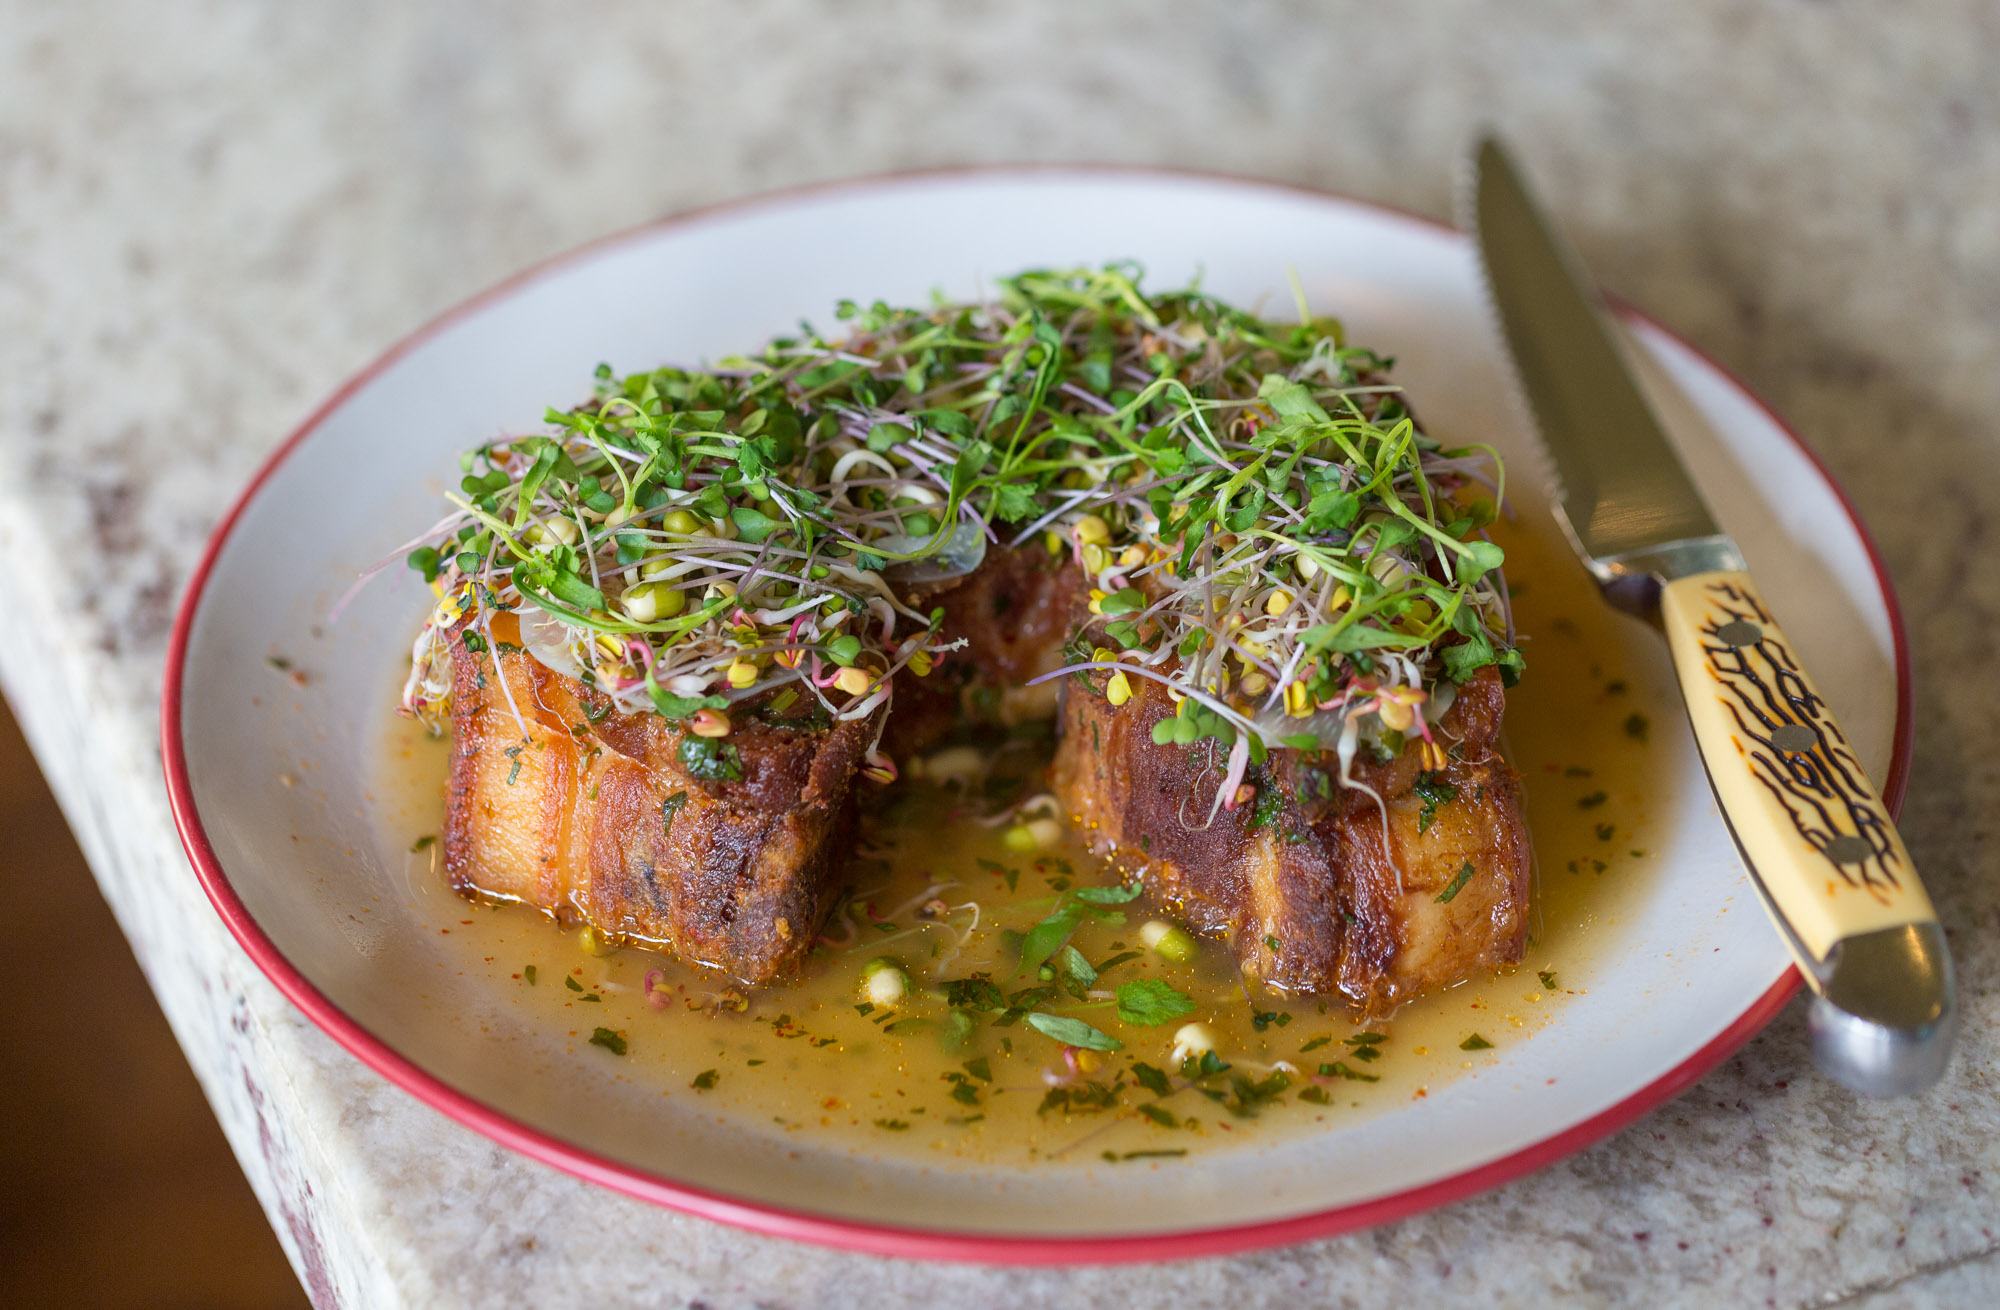 The famed chicharron porchetta dish from Broken Spanish in Los Angeles.